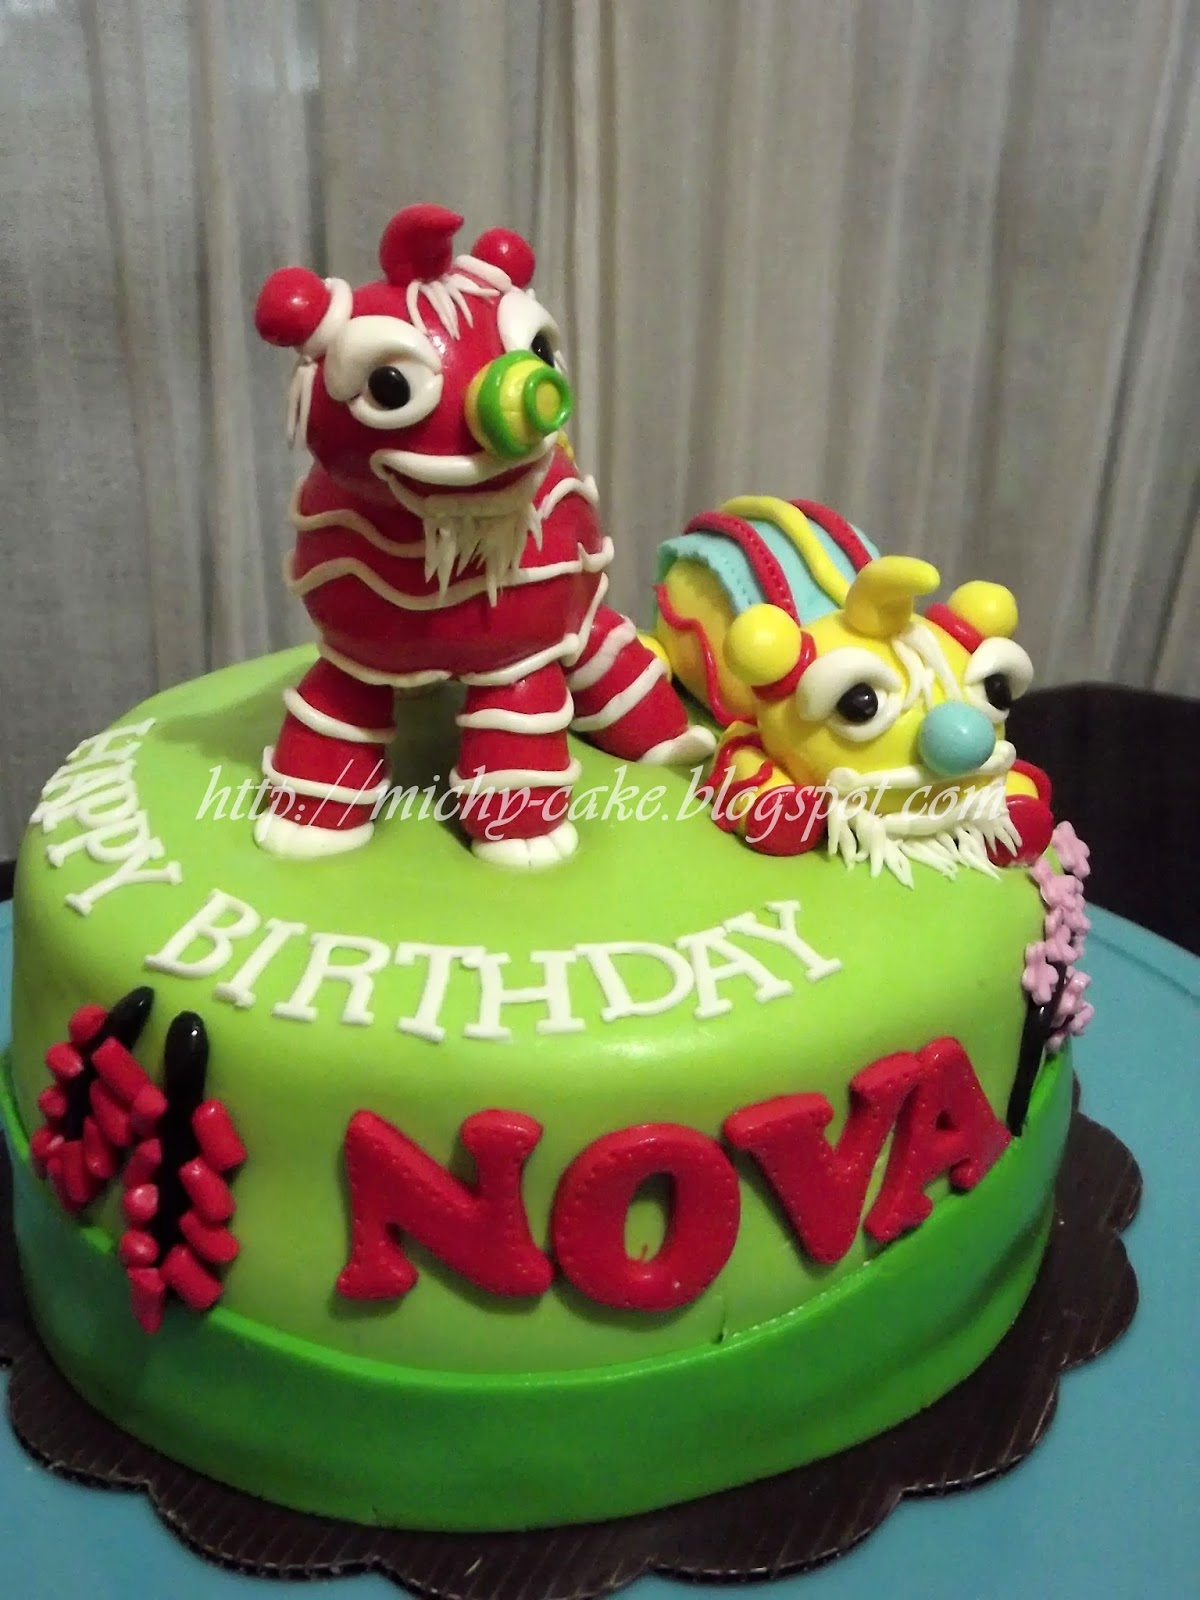 Michelle Creative Cakes Lion Dance Cake for Nova